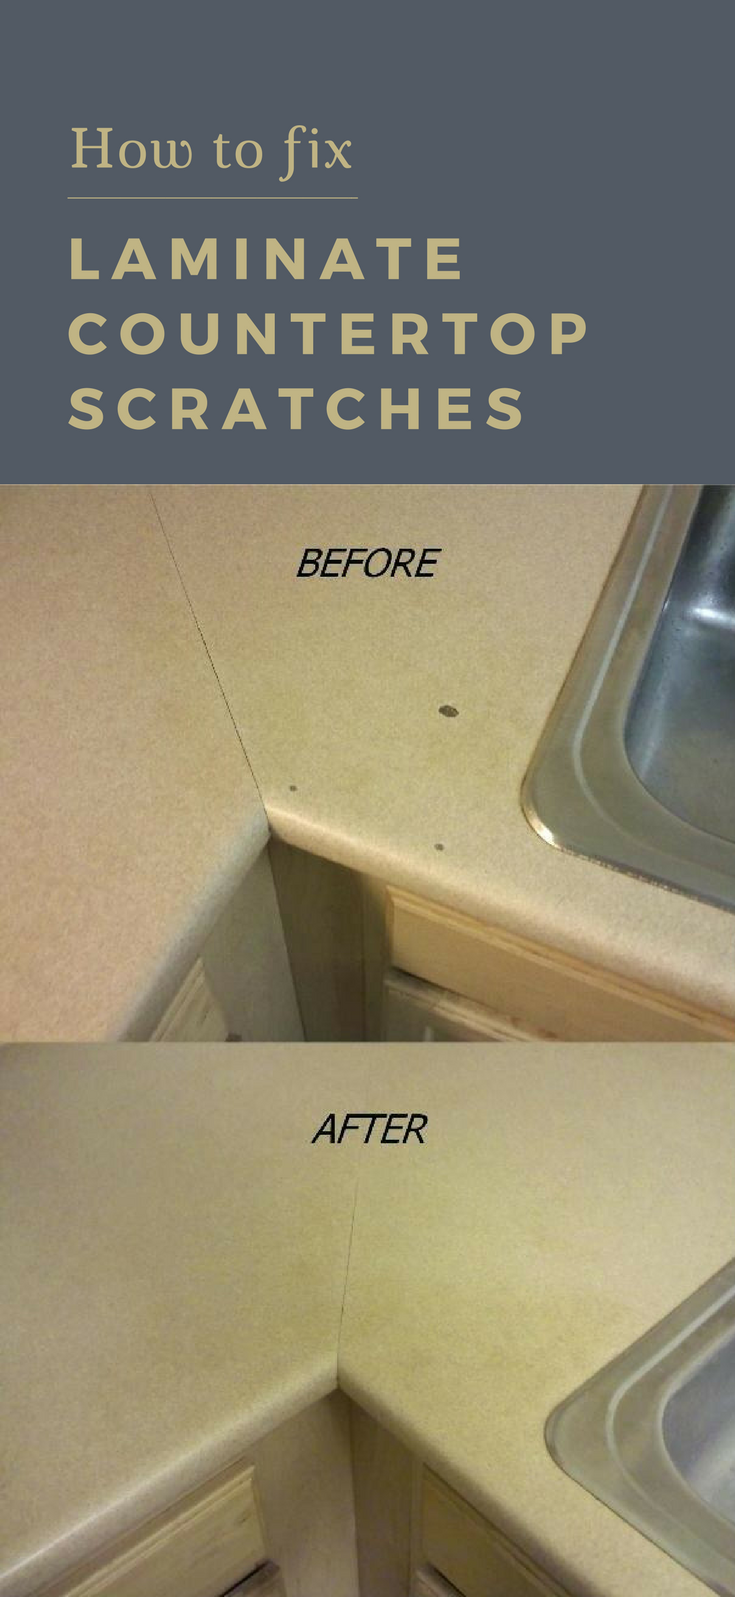 How To Fix Laminate Countertop Scratches Cleaningdiy Net With